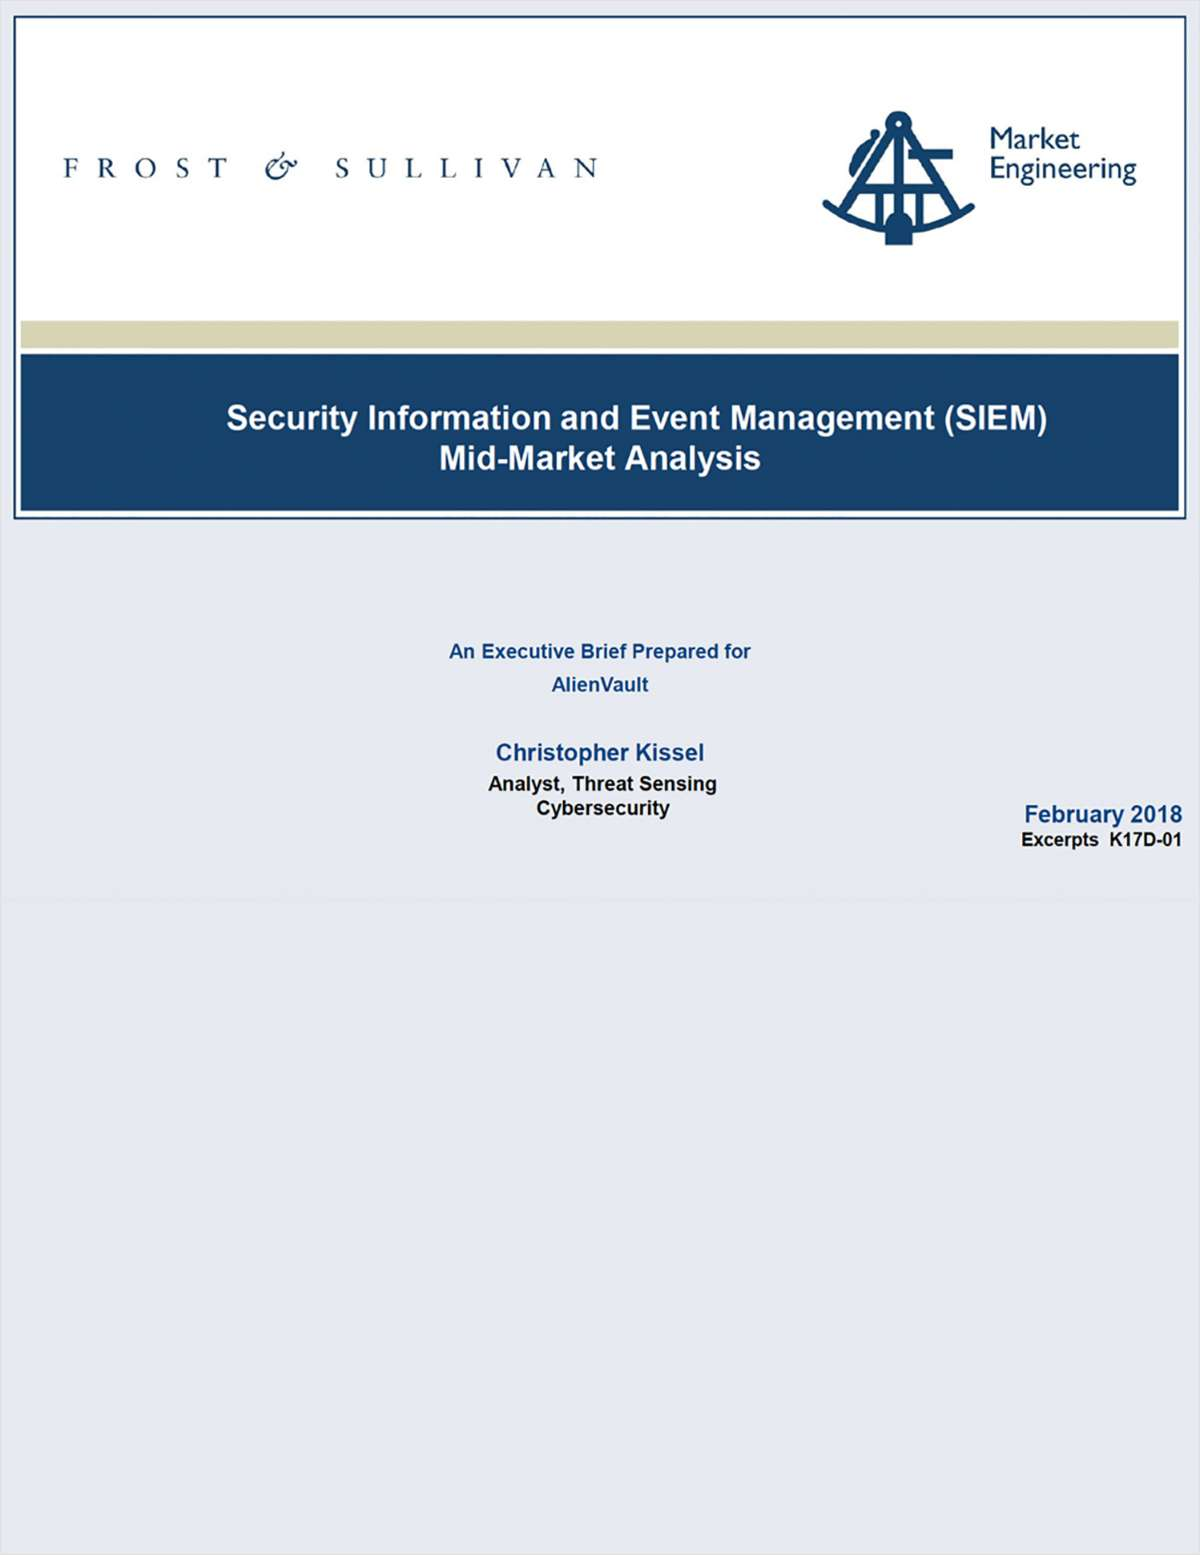 Frost & Sullivan: Security Information and Event Management (SIEM) Mid-Market Analysis